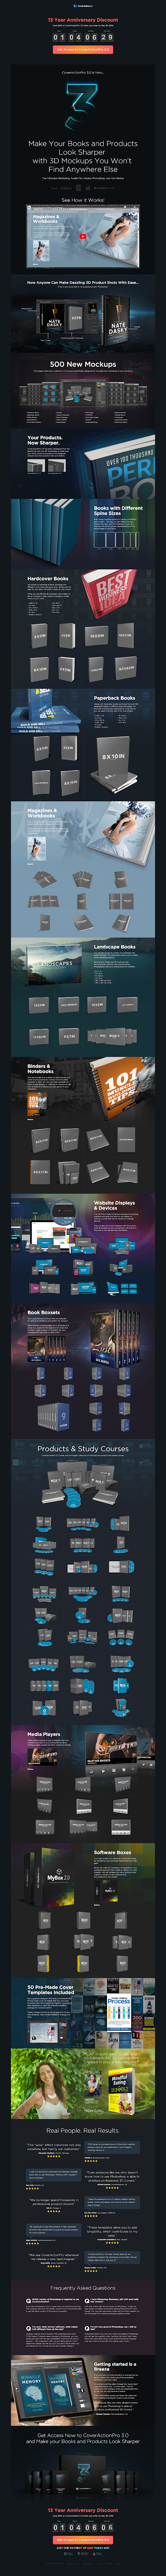 CoverActionPro%2B-%2BEbook%2BCover%2BSoftware.png